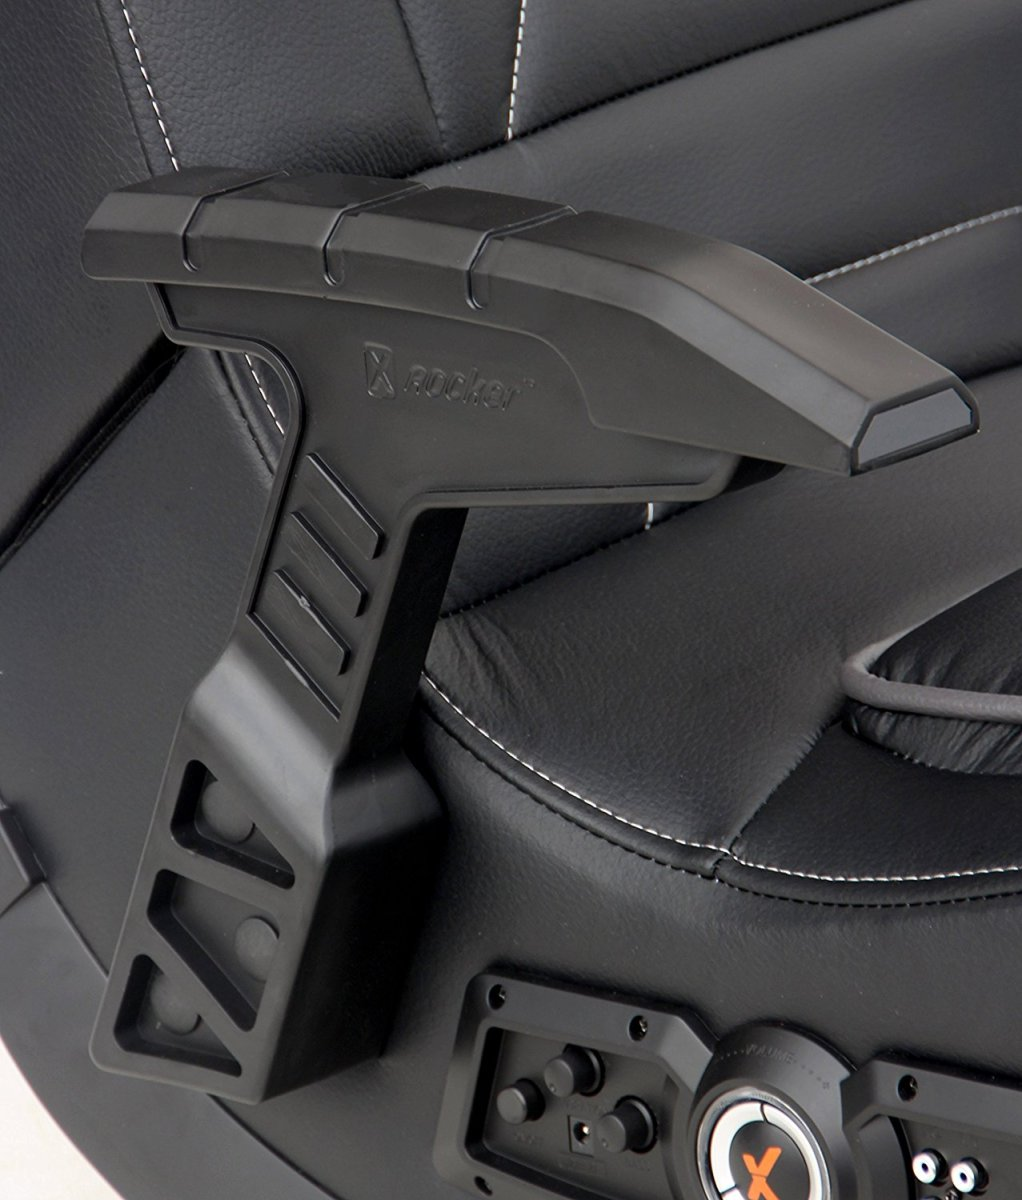 The X Rocker Video Gaming Chair Is Crazy